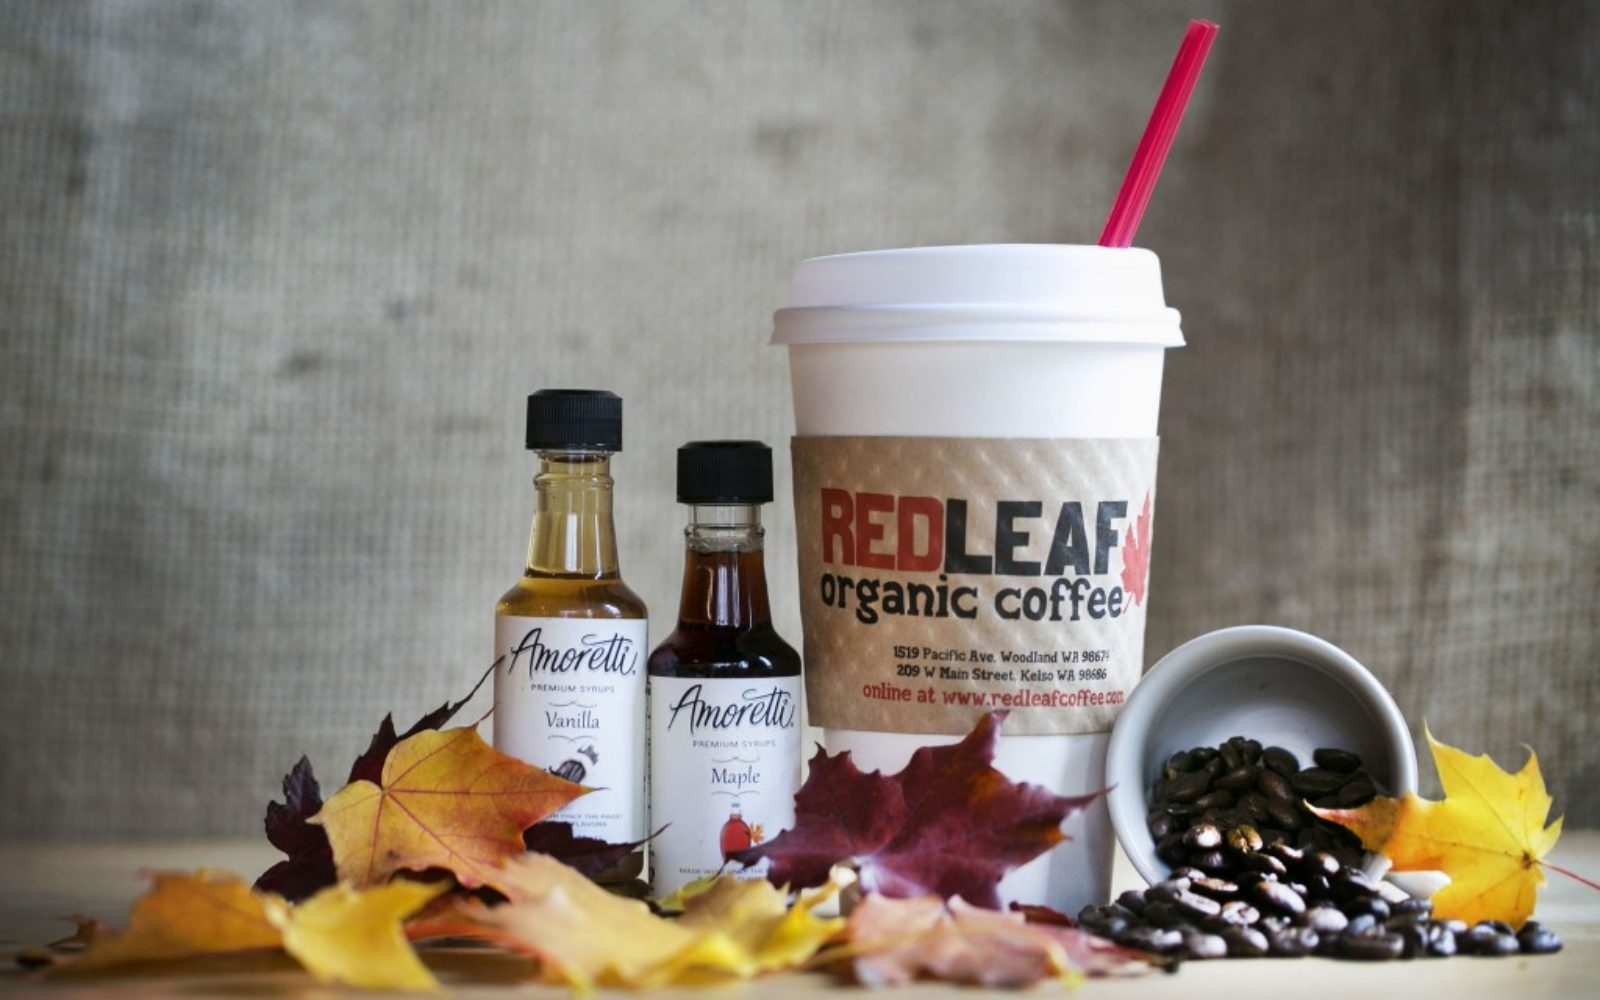 commercial-redleafcoffee4-1024x640